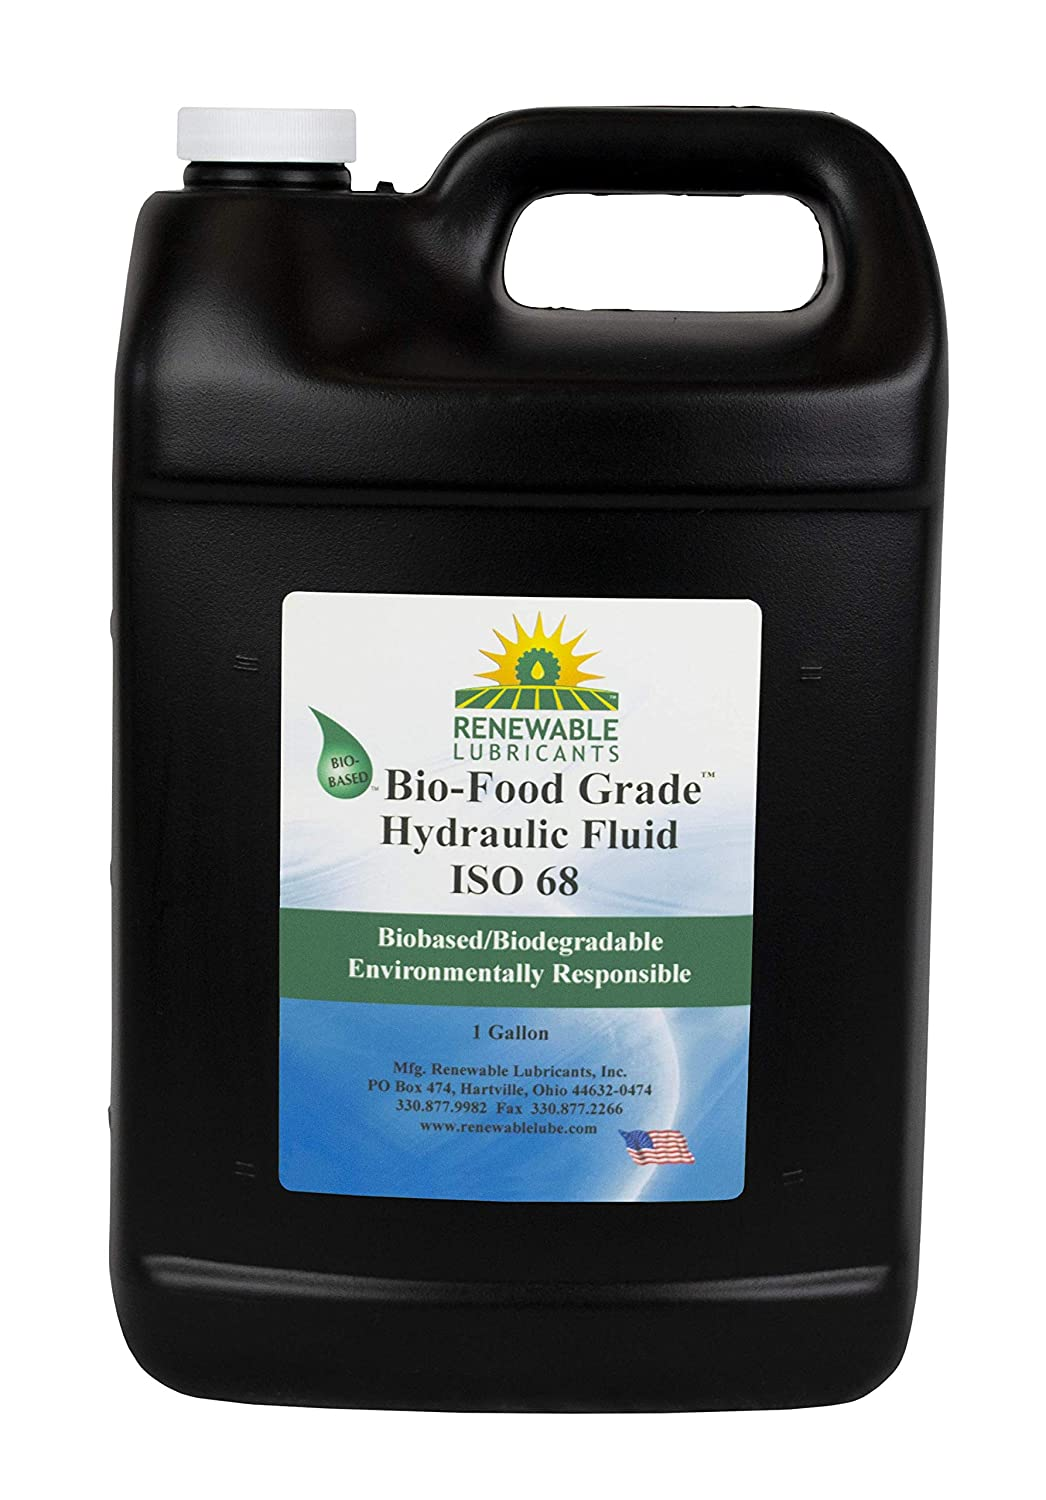 Renewable Lubricants - 87143 Bio-Food Grade Hydraulic Fluid, 1 gal, ISO 68, Yellow